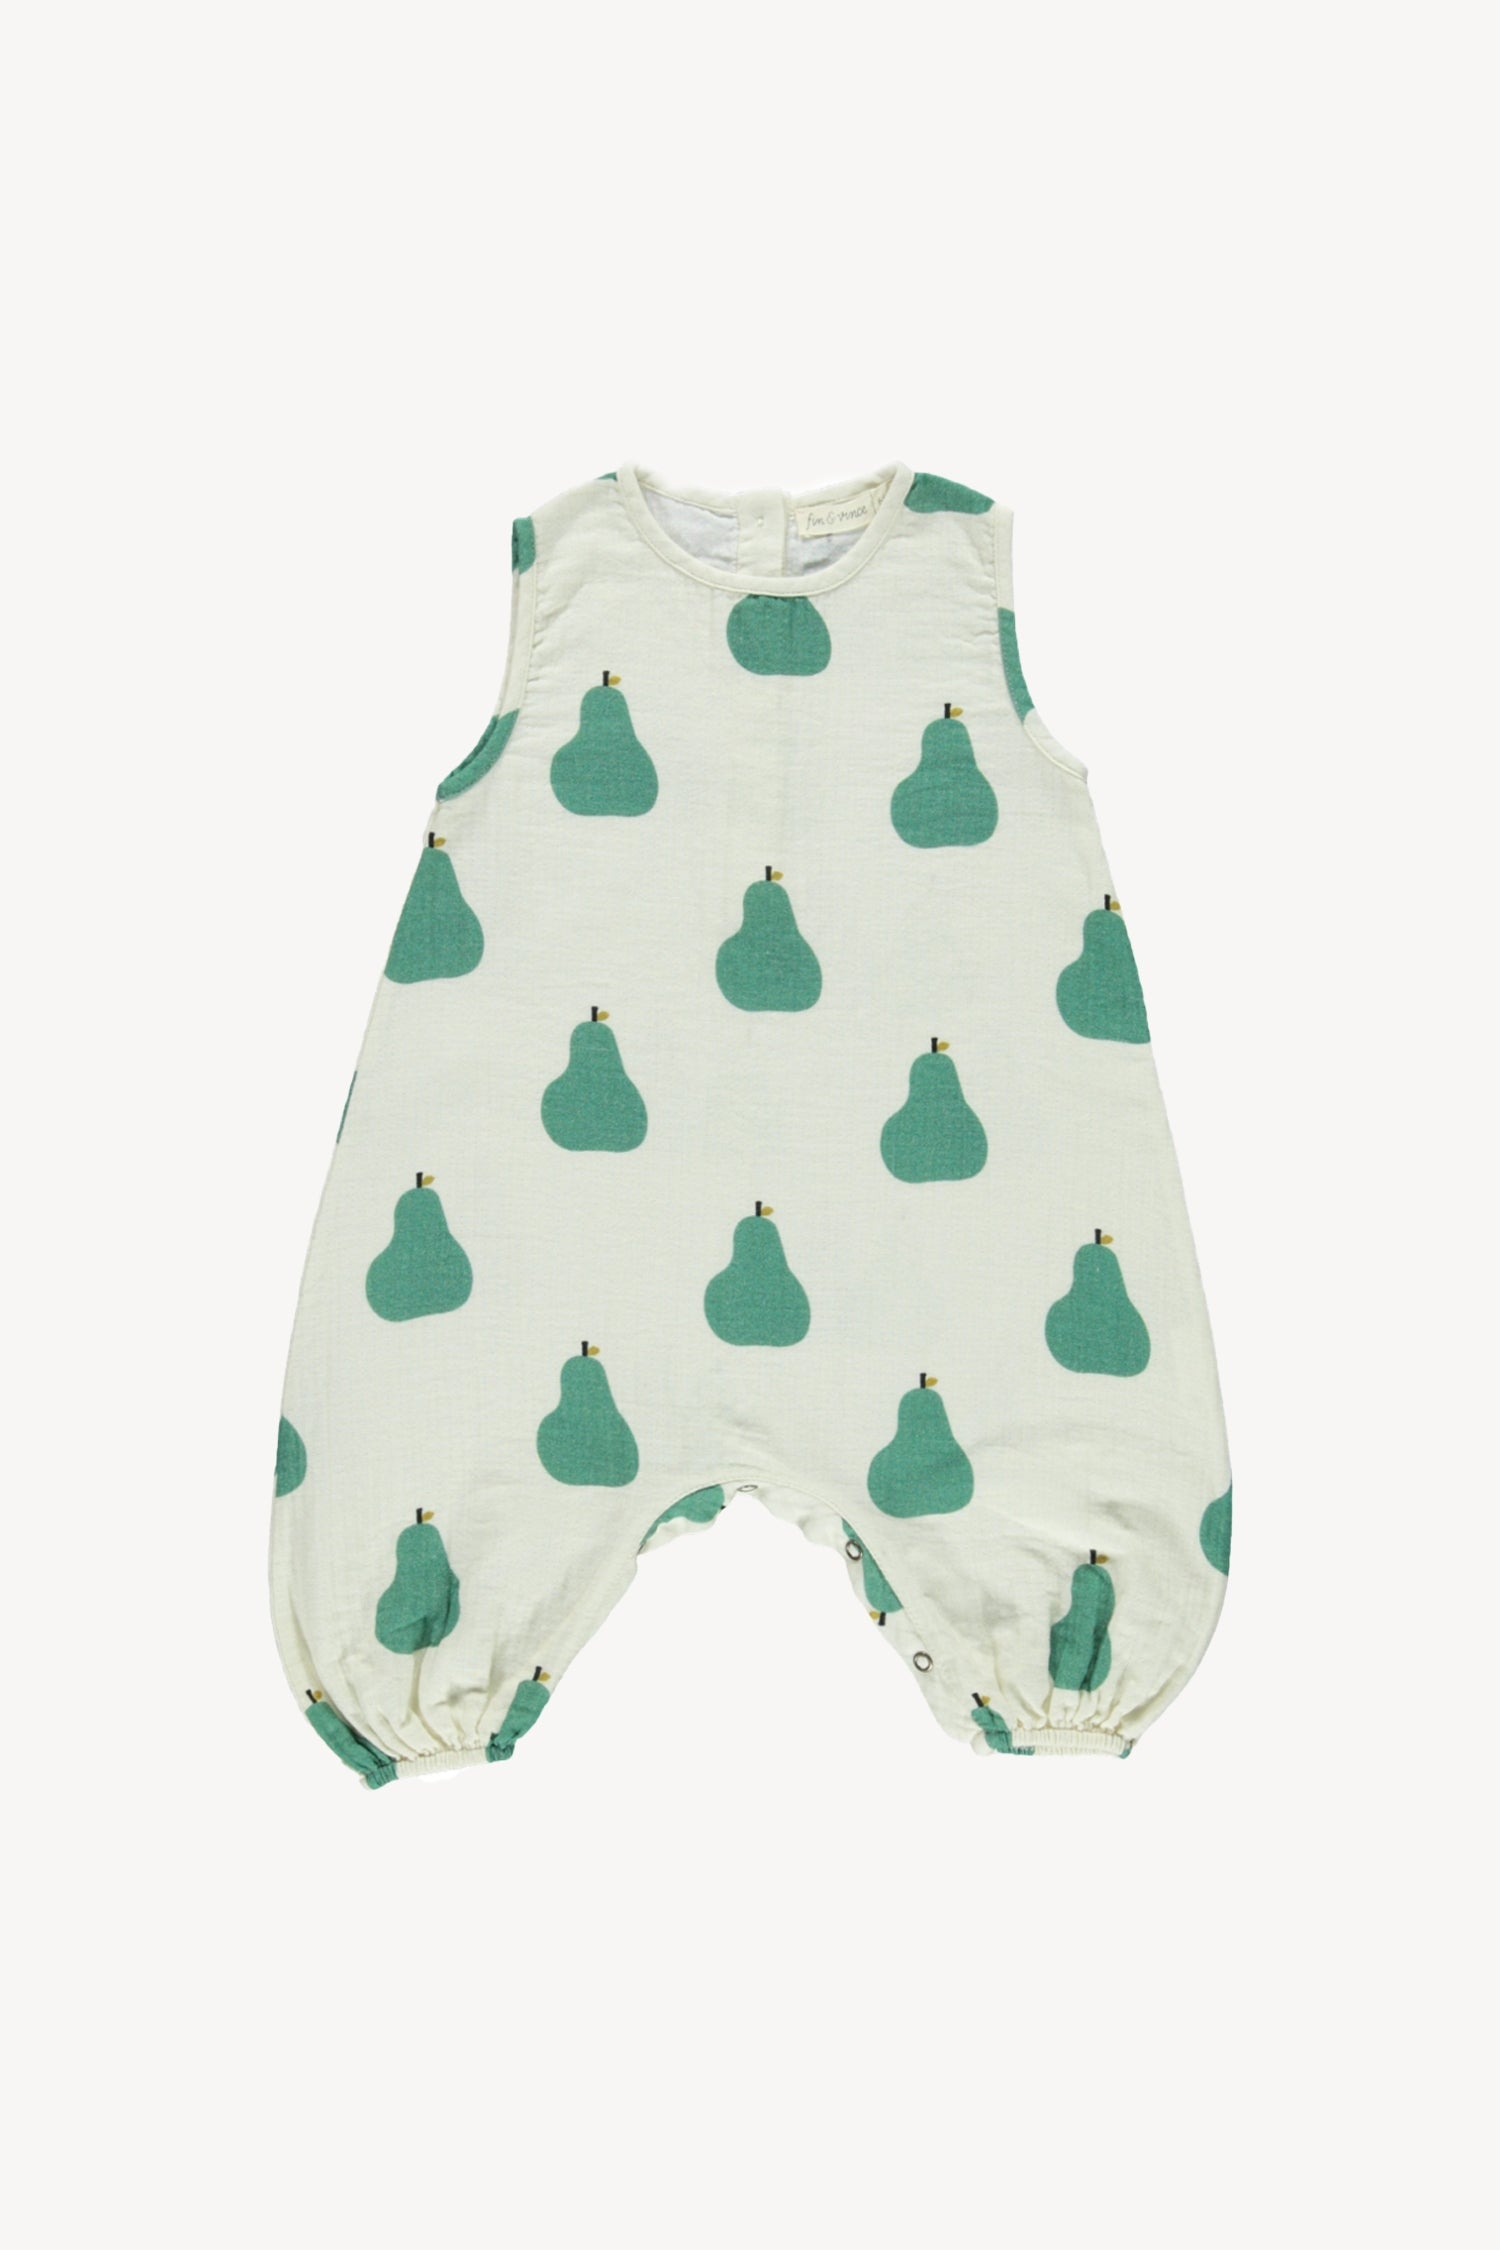 Fin and Vince - Tank Romper (Pears) - Last 0/3